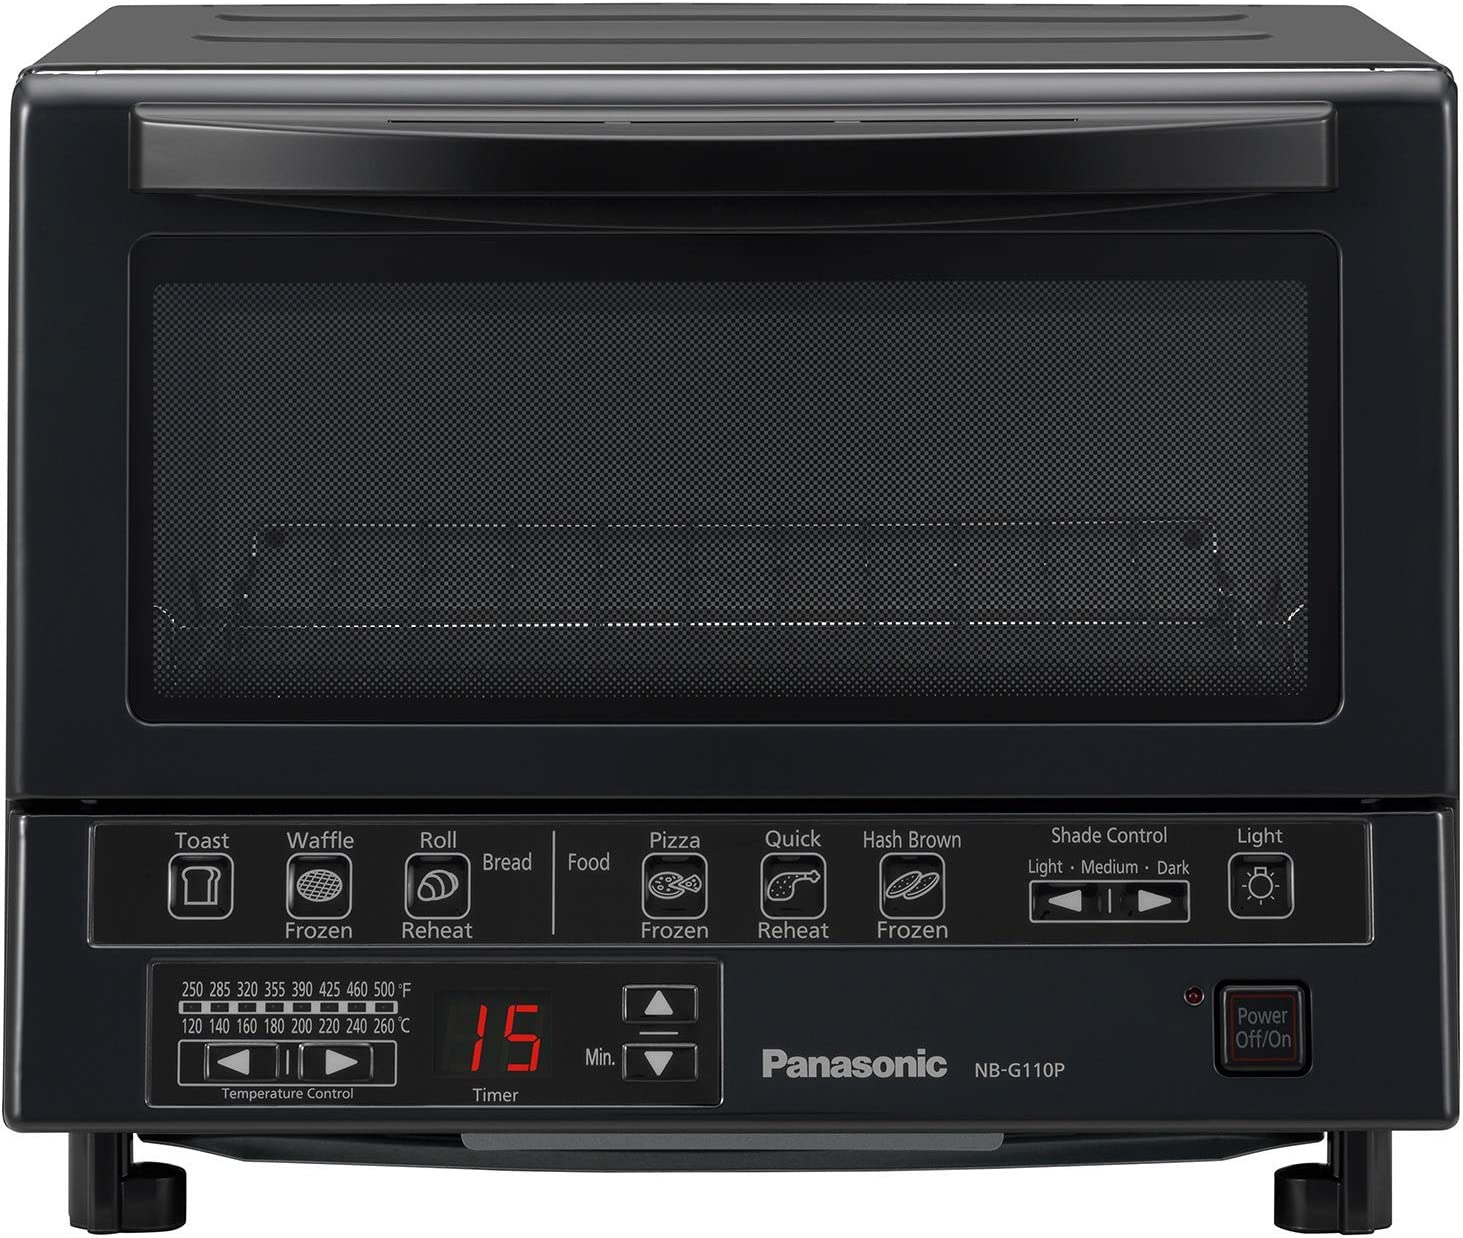 Panasonic FlashXpress Compact Toaster Oven with Double Infrared Heating, Crumb Tray and 1300 Watts of Cooking Power – 4 Slice Countertop Toaster Oven - NB-G110P-K (Black) (Renewed)